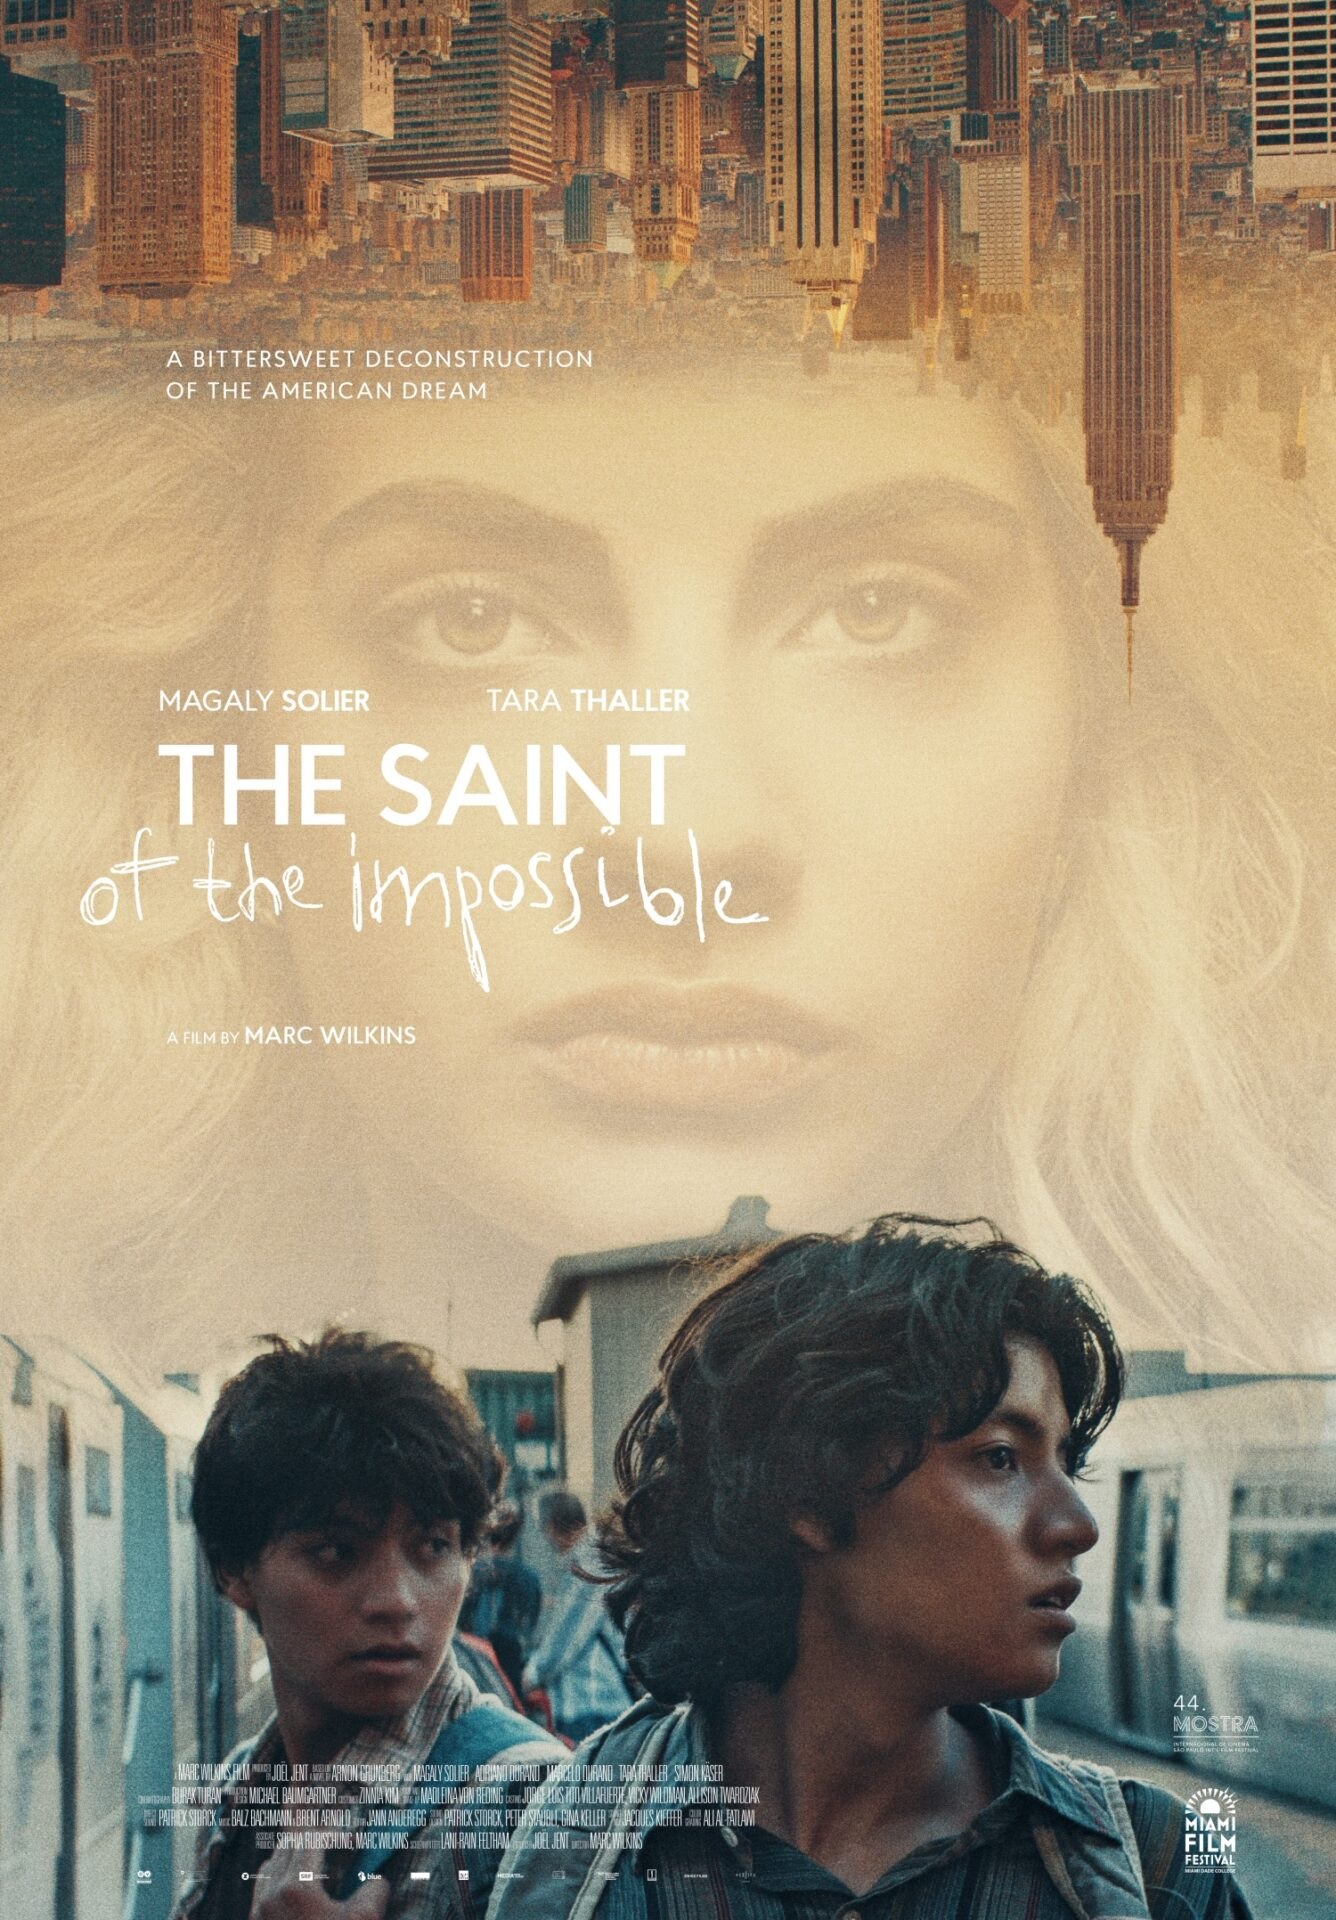 THE SAINT OF THE IMPOSSIBLE + by Marc Wilkins